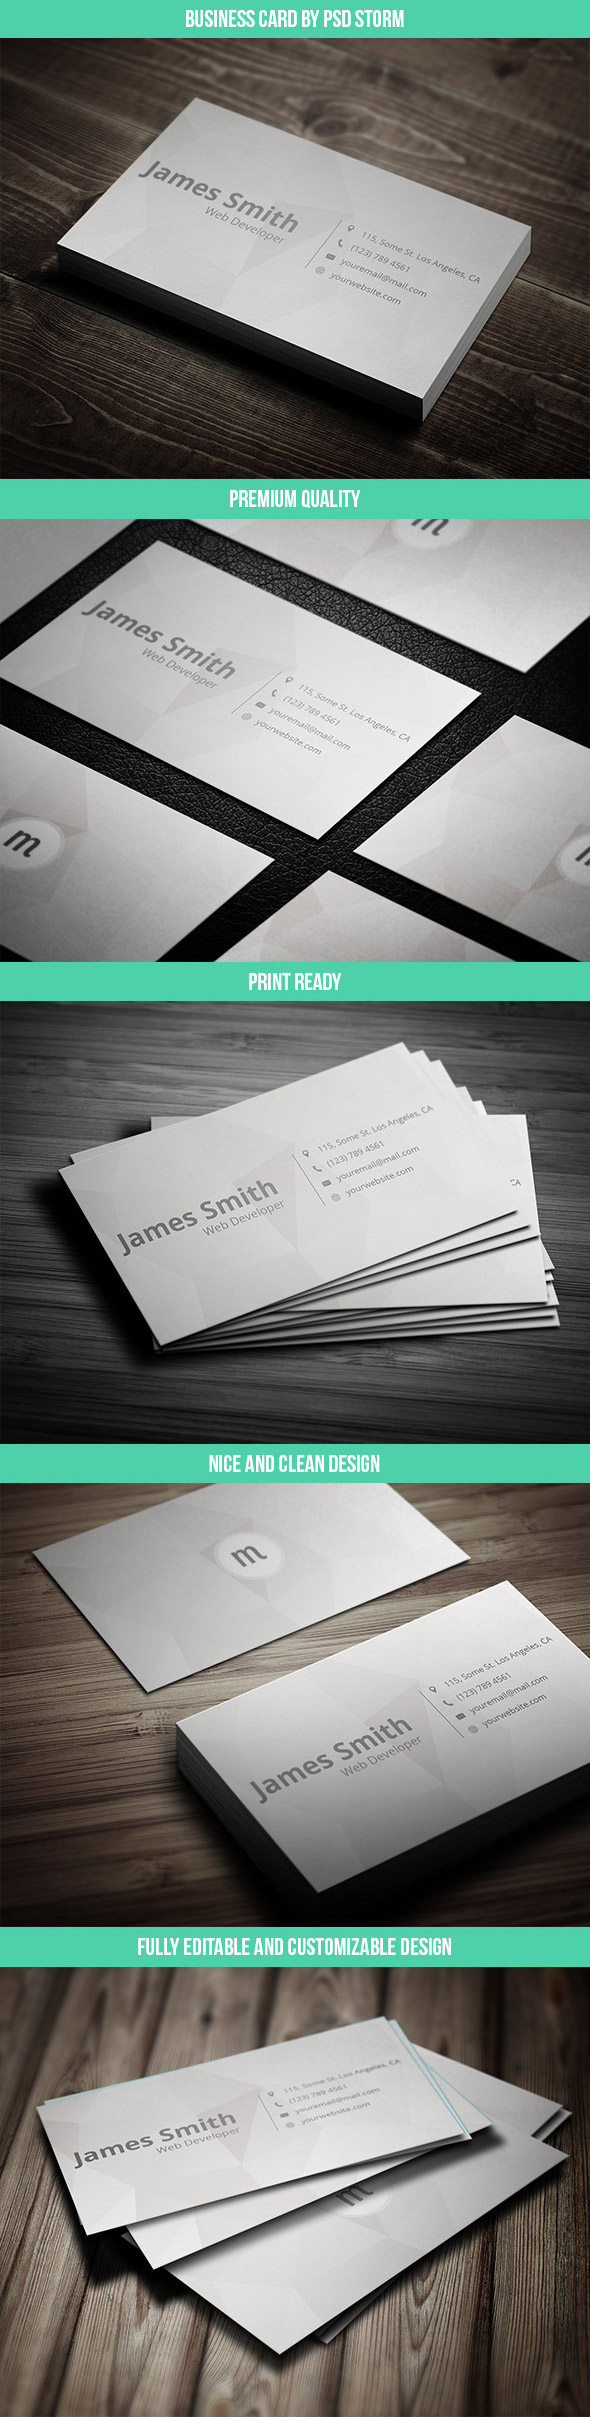 Minim - Clean and Minimal Business Card Template on Behance